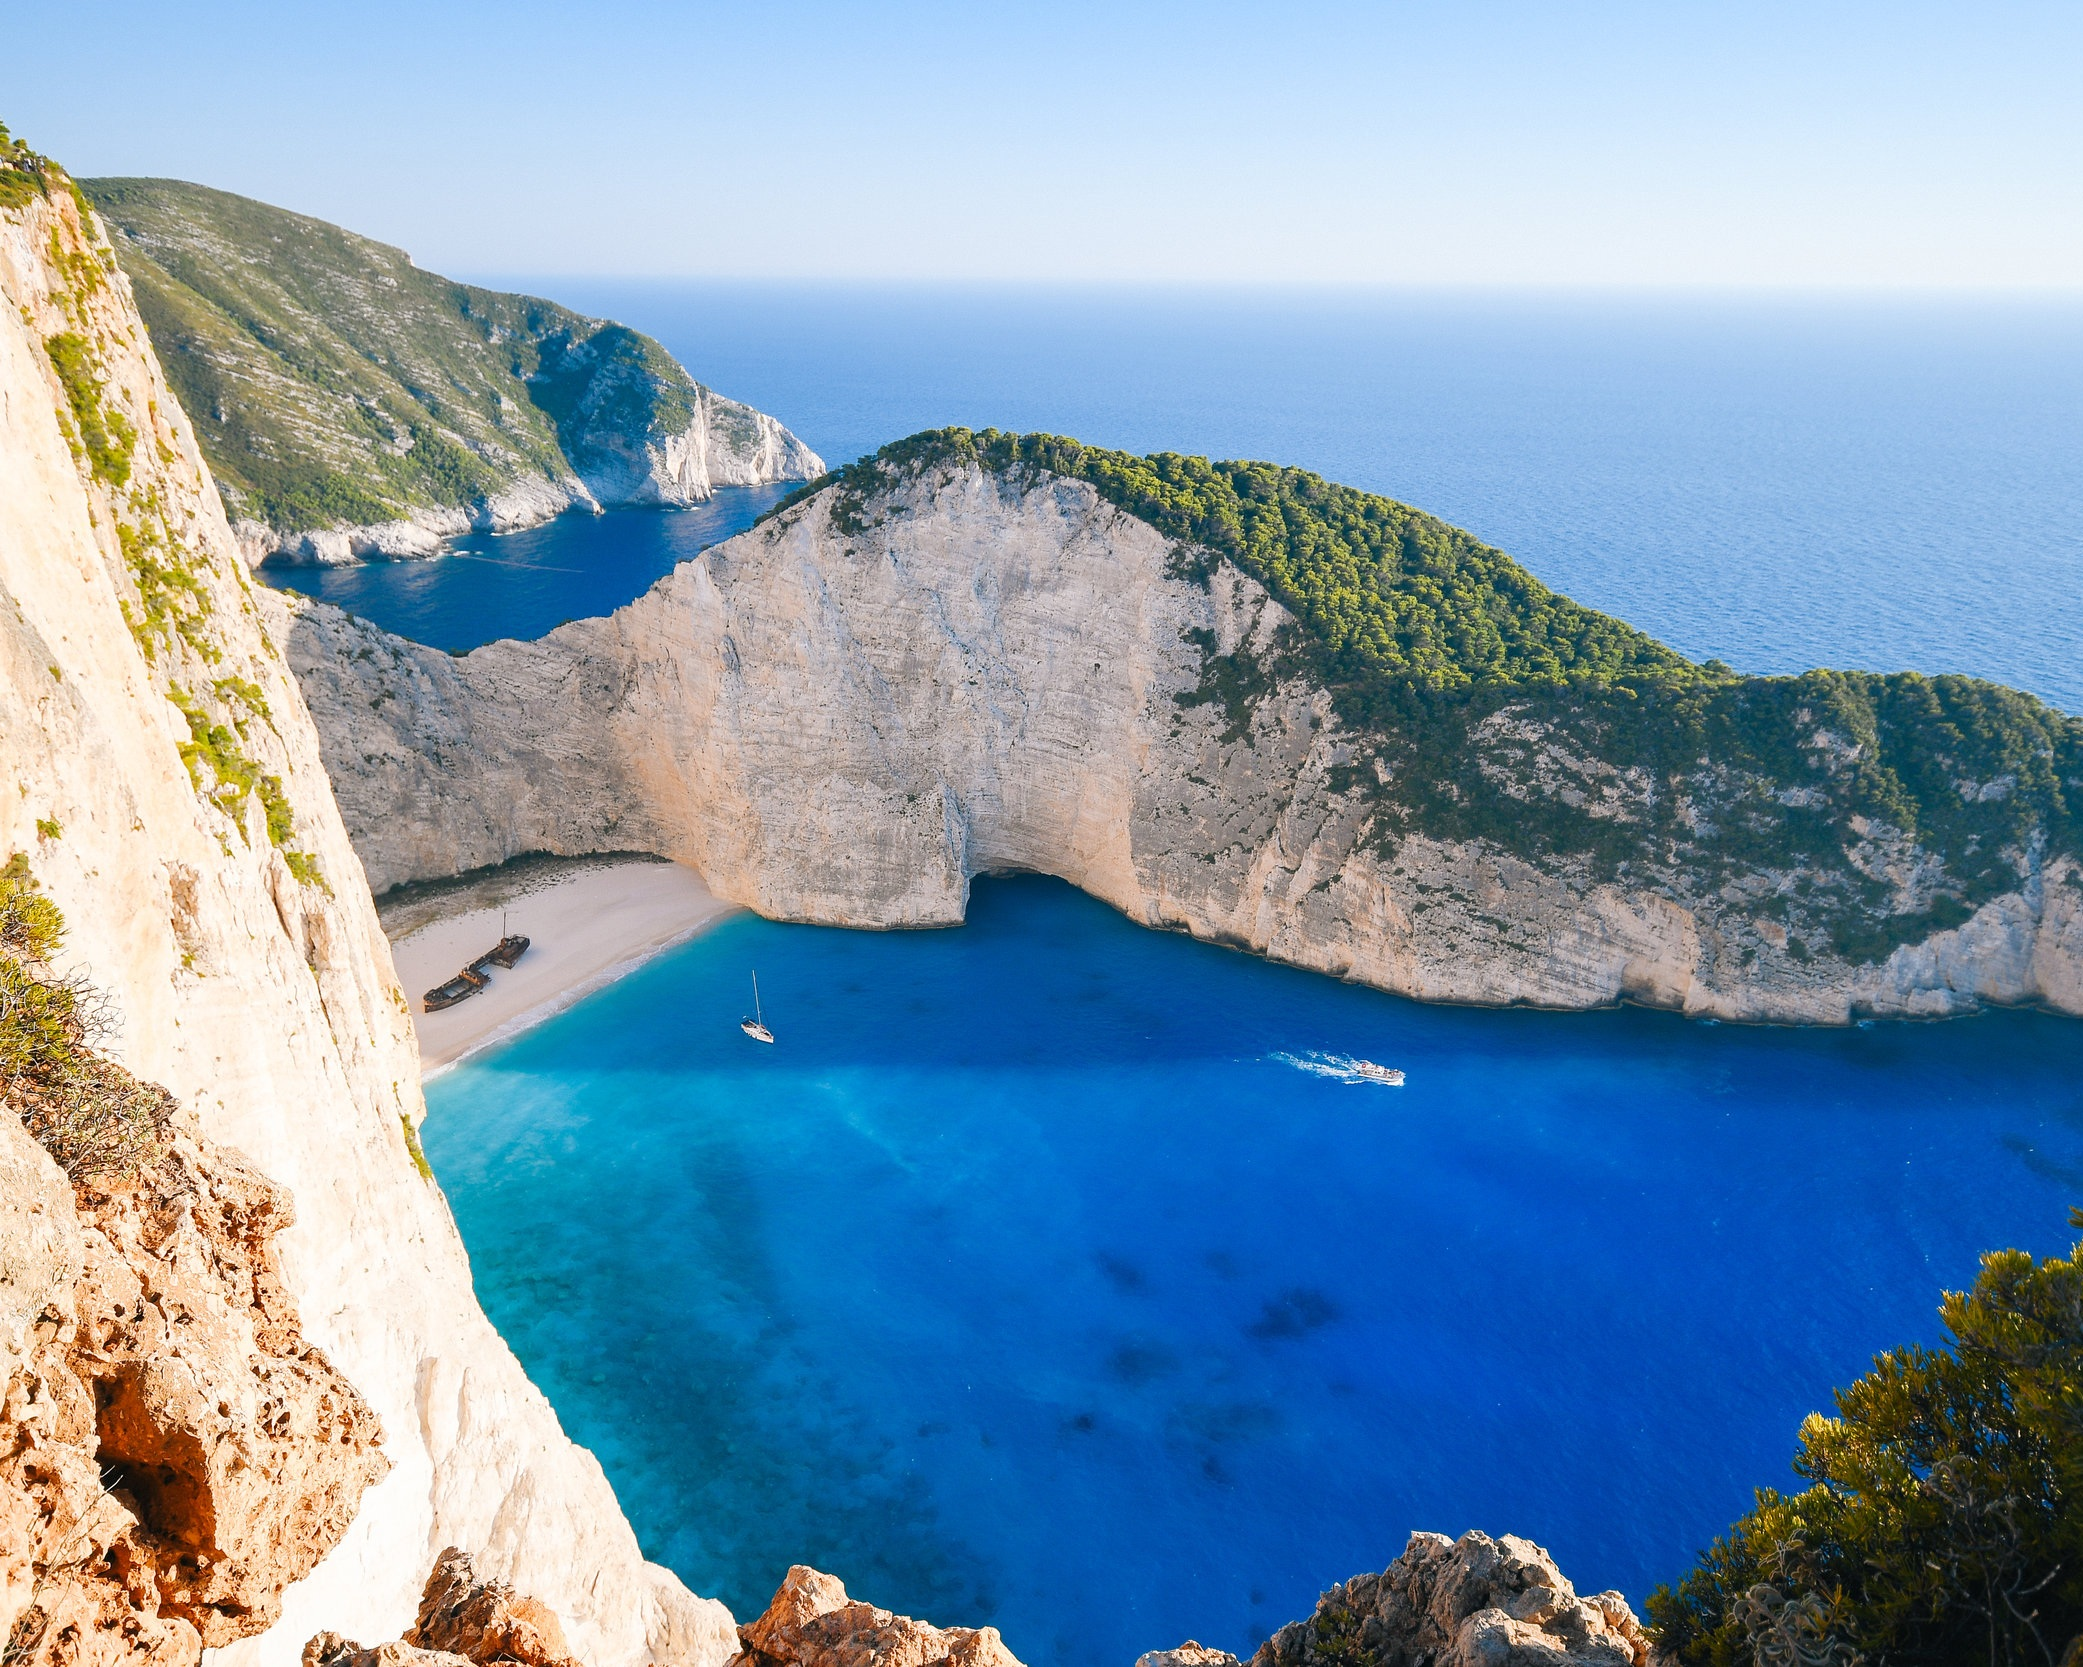 DESTINATION GREEK ISLANDS - Whether Dodecanese, Cyclades, or Ionian Islands - Greece is a true yachting paradise. The way is the goal: With over 14,000 km of coastline, several thousand uninhabited islands and 250 to 300 days of sunshine a year in Greece, everyone will find what he or she is looking for, whether idyll-seeking or in party mood. The individual, varied islands in Greece are very close to each other and are ideally explored by island hopping. Experience rocky stone coasts, golden sandy beaches and deserted coves as well as picturesque villages during your yacht trip. Take all the time to experience all the facets of the fascination in Greece.Discover amazing yachting destinations on our blog >>